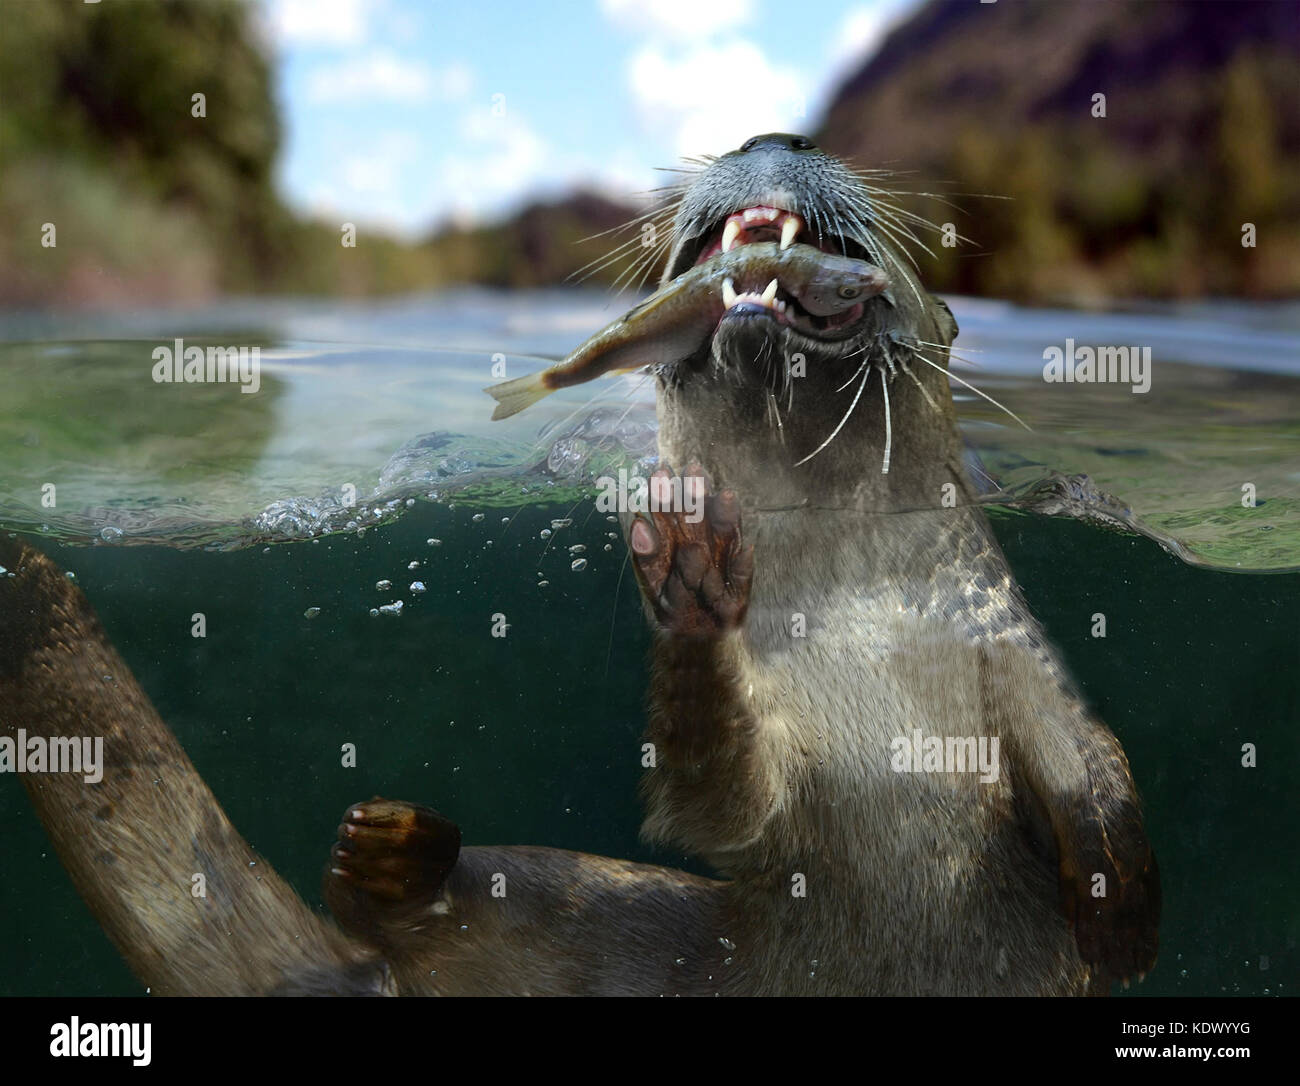 Eurasian otter, Lutra lutra. At the surface eating a freshly caught fish. Otter's diet mainly consists of fish - Stock Image